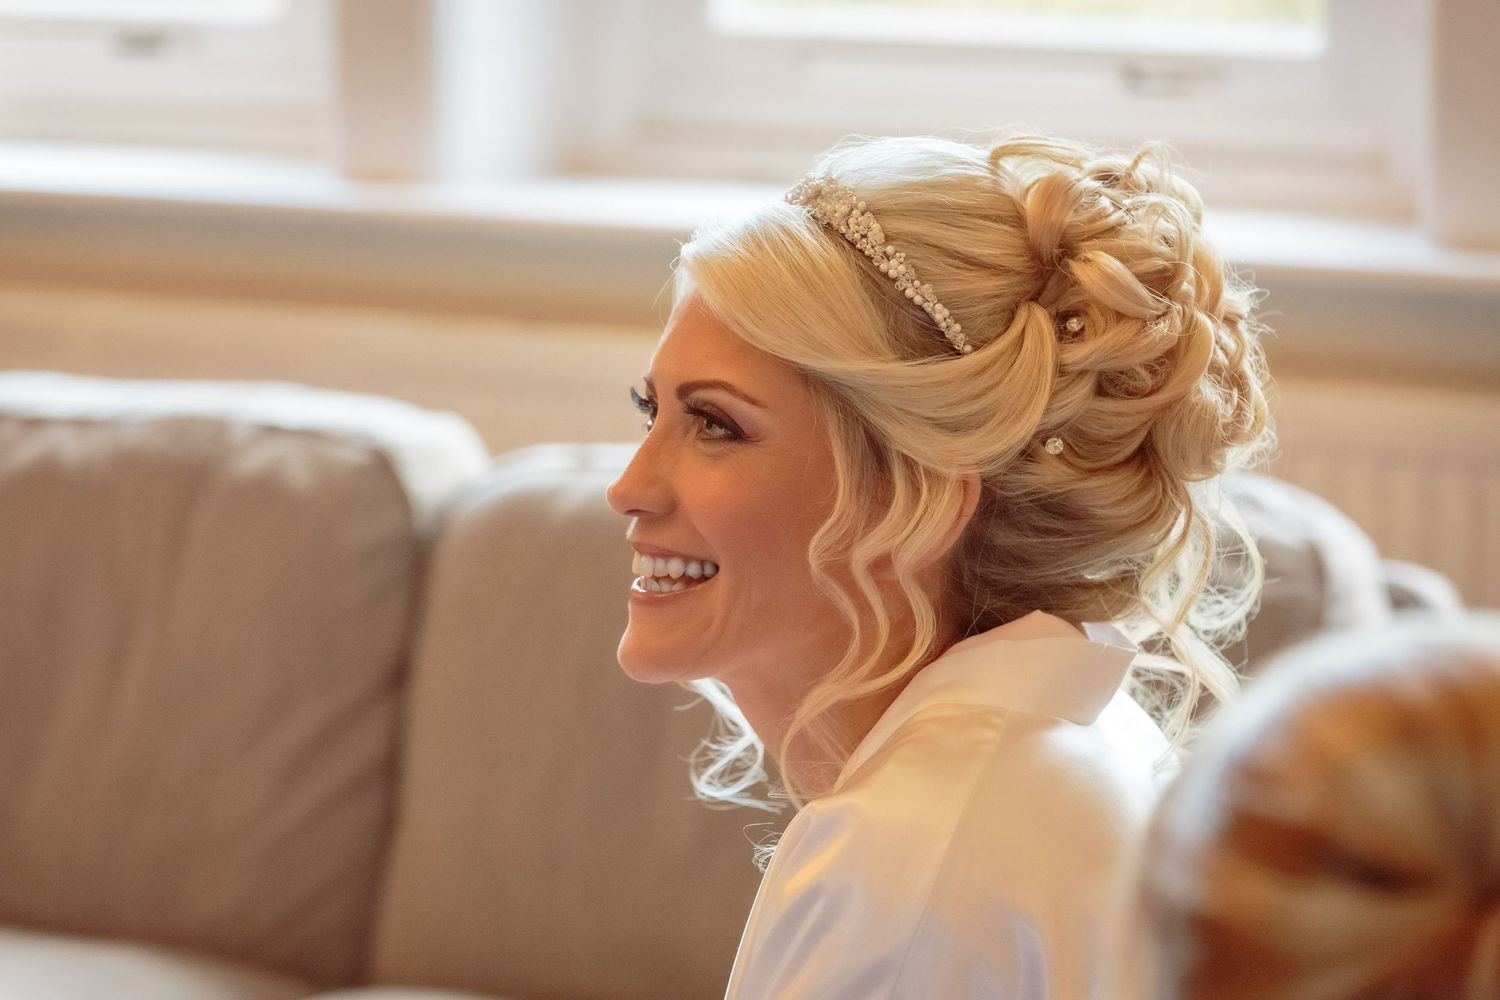 bride sits on the couch smiling during the bridal prep